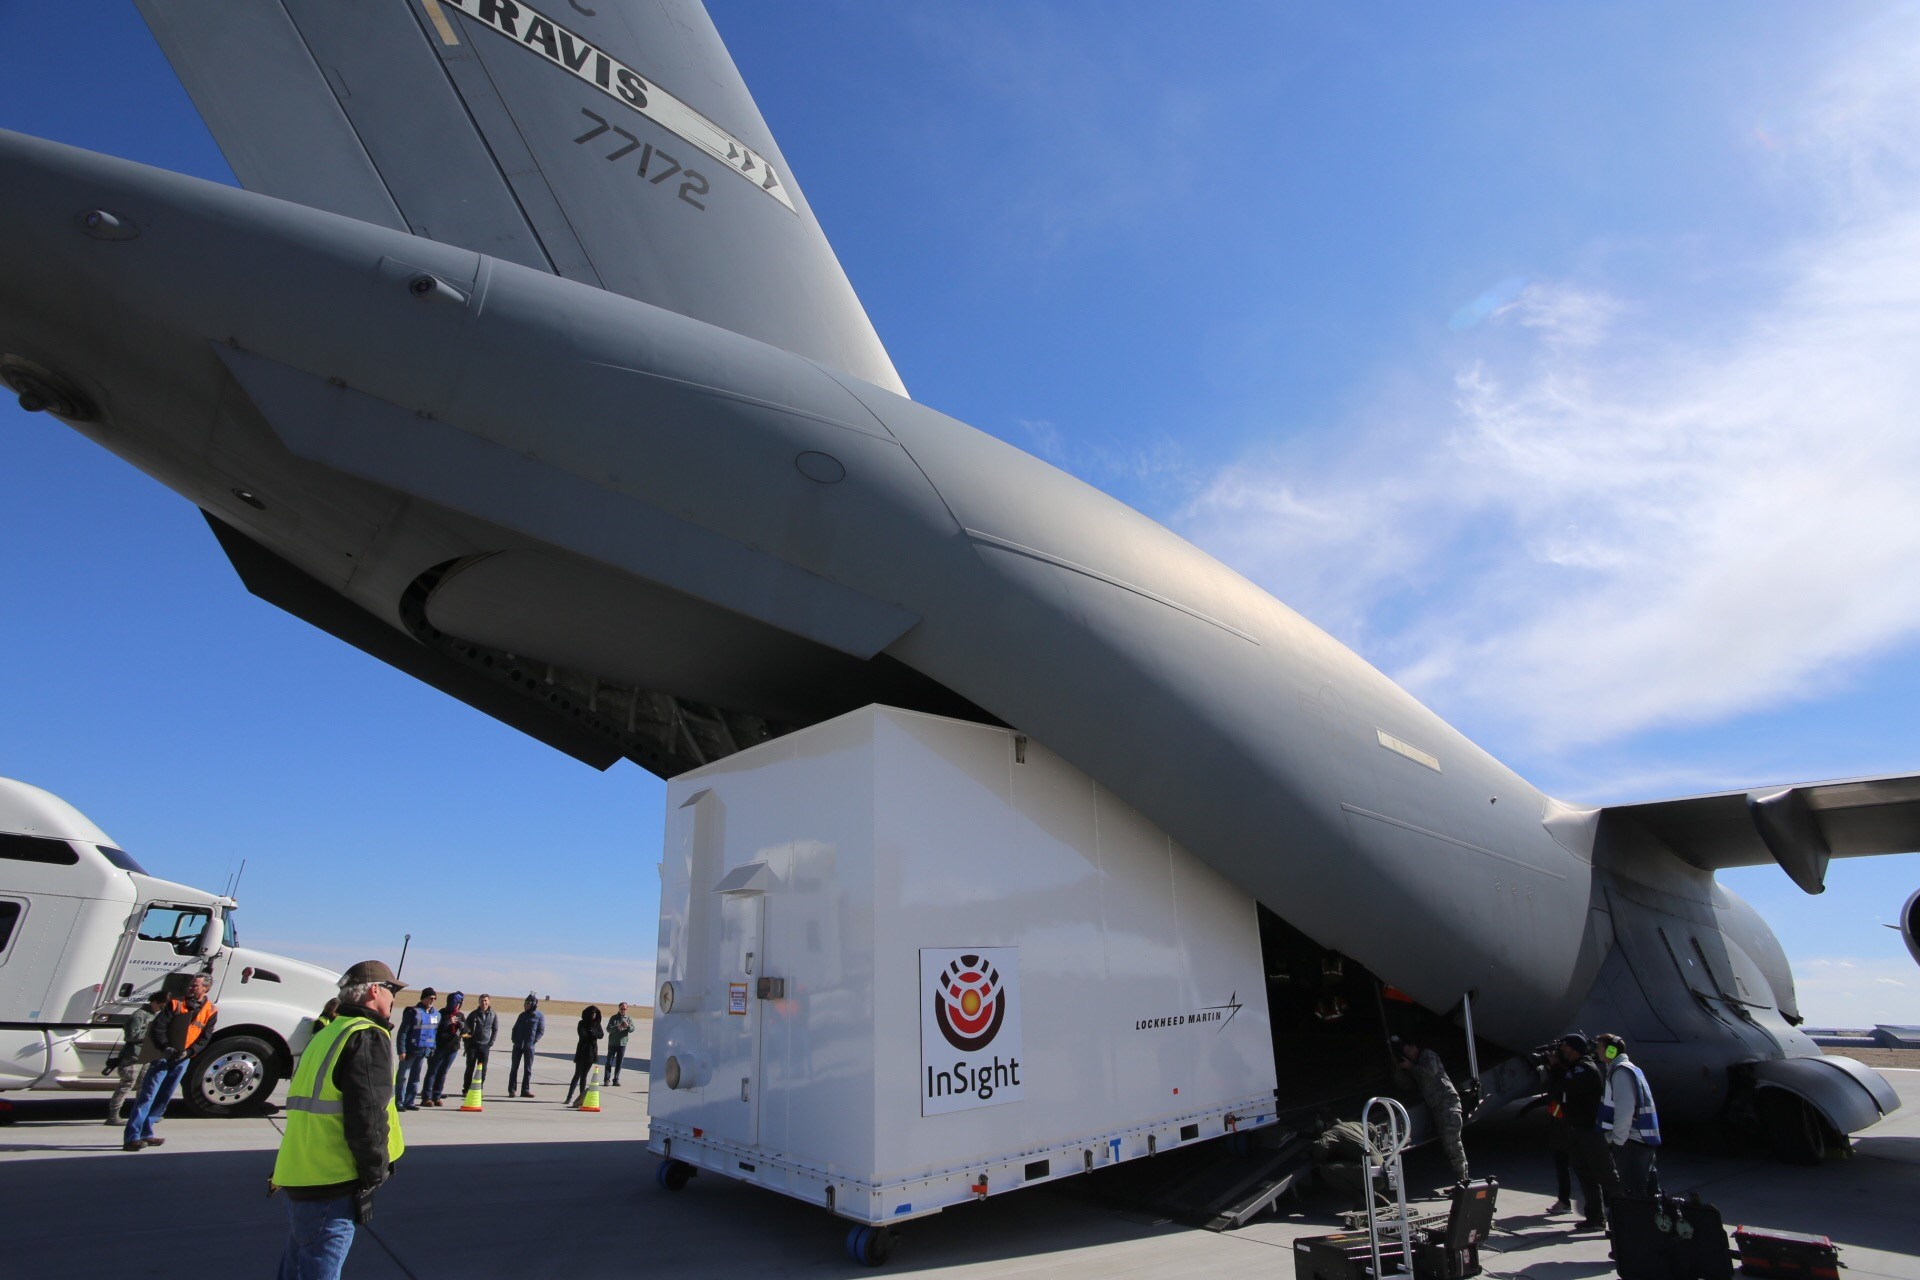 large crate being loaded into military transport plane